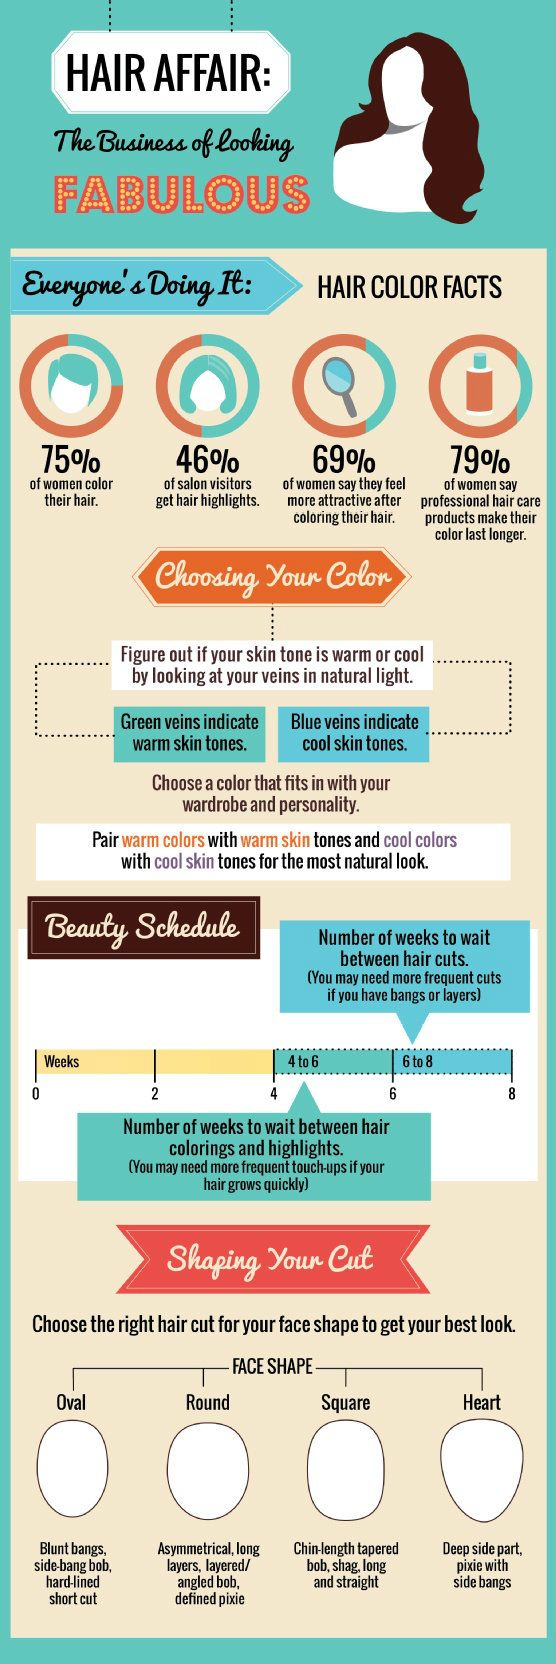 It's A Hair Affair [INFOGRAPHIC] Awesome facts about hair color, the salon, and how to keep your clients looking good!